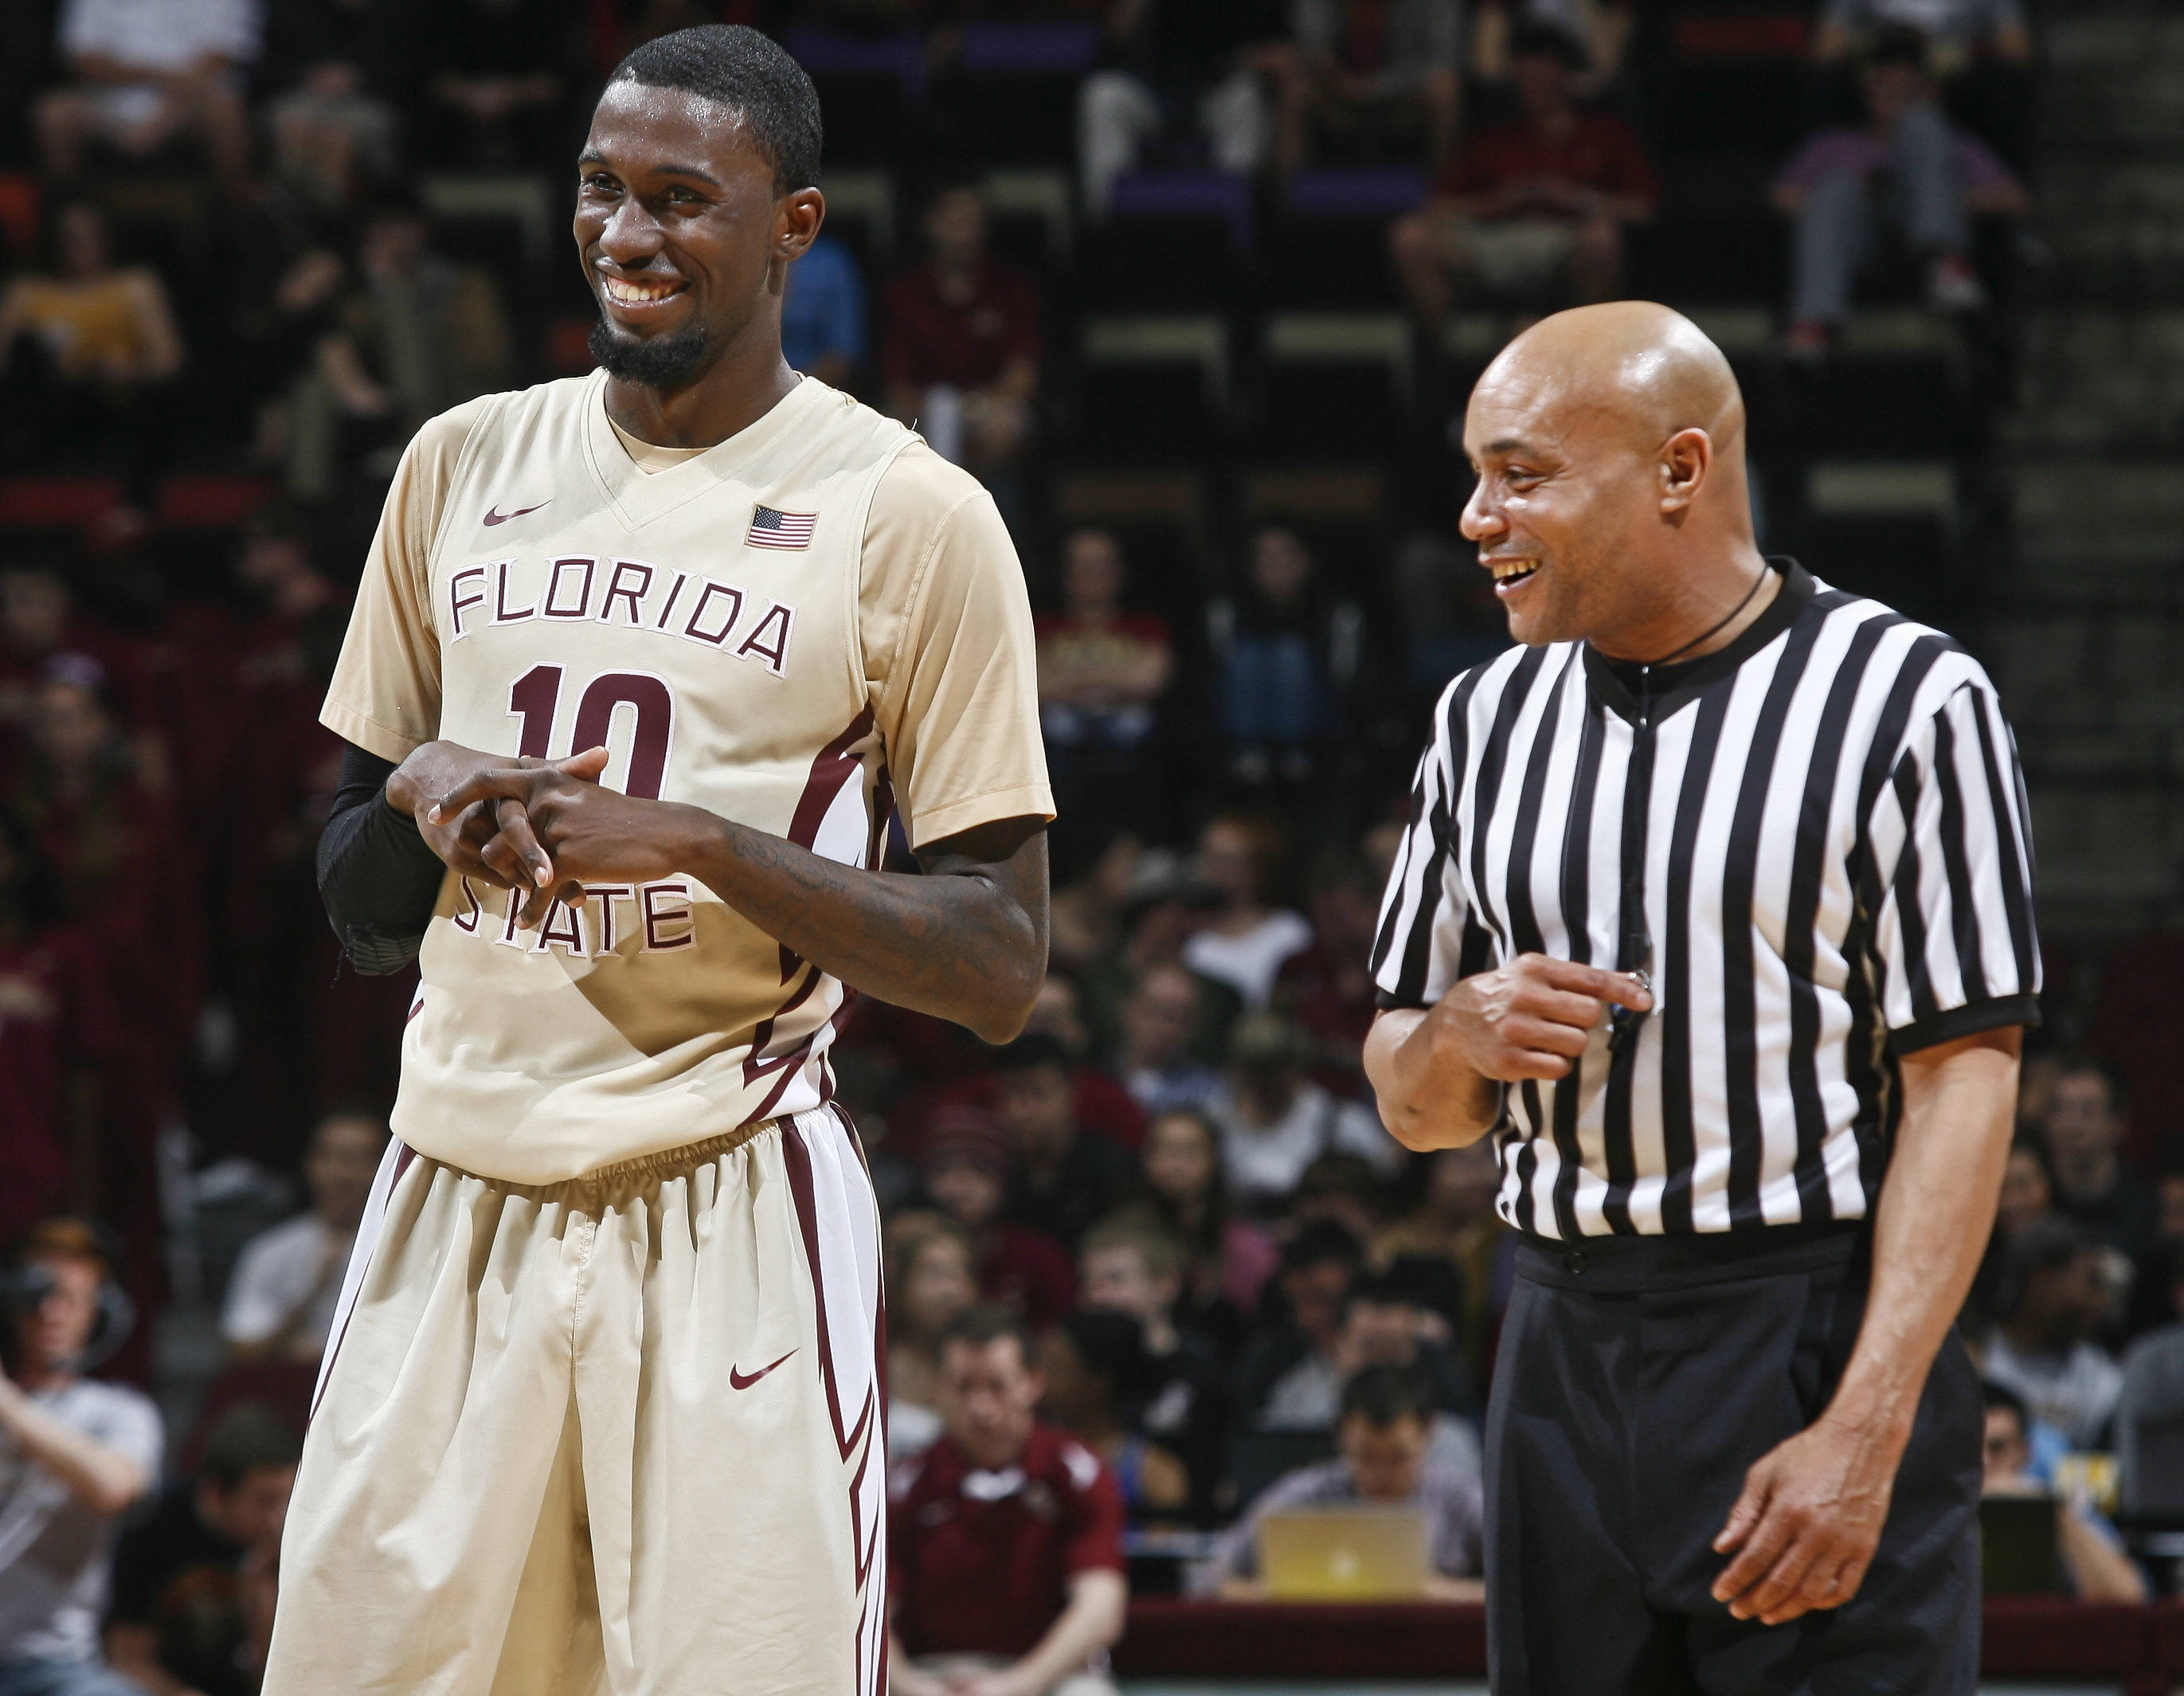 Feb 5, 2014; Tallahassee, FL, USA; Seminoles forward Okaro White (10) shares a laugh with referee Bill Covington, Jr. in the second half. Phil Sears-USA TODAY Sports